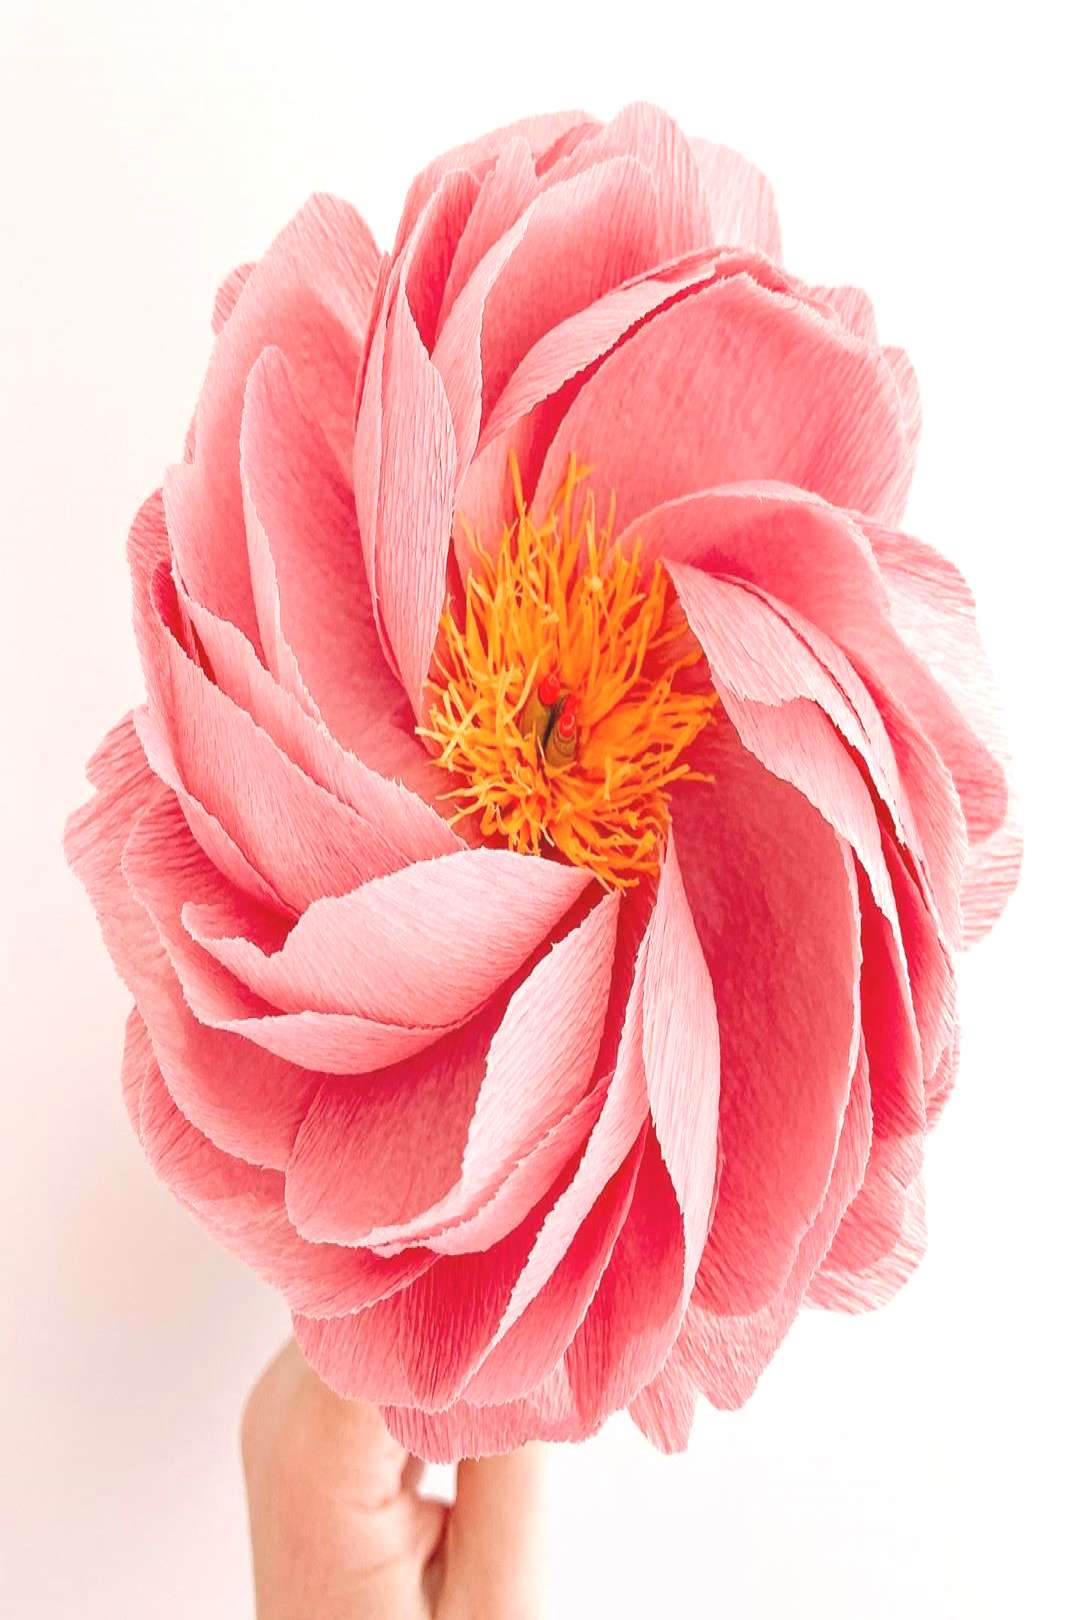 Made this peony with 90g crepe. So pretty. The paper stretches so